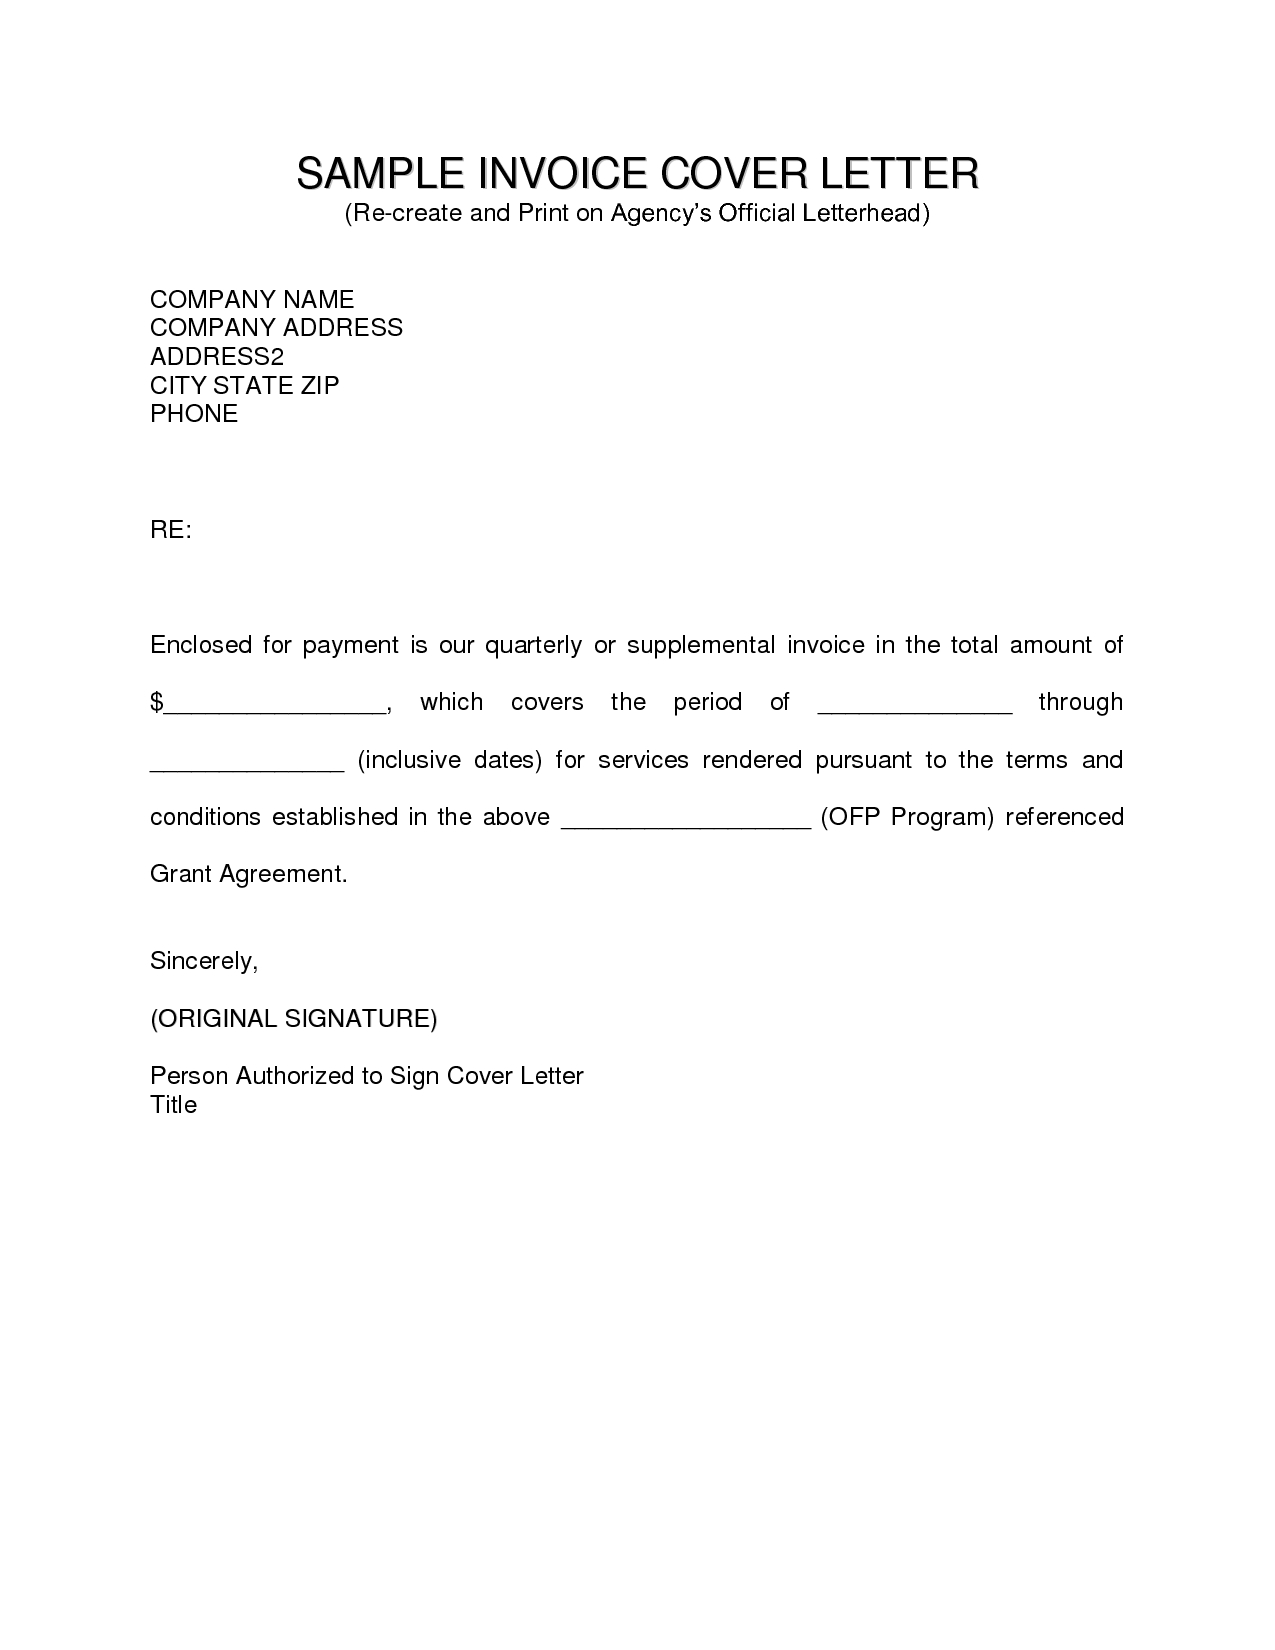 Request Payment Letter Sample New Letter Requesting Paymen Big